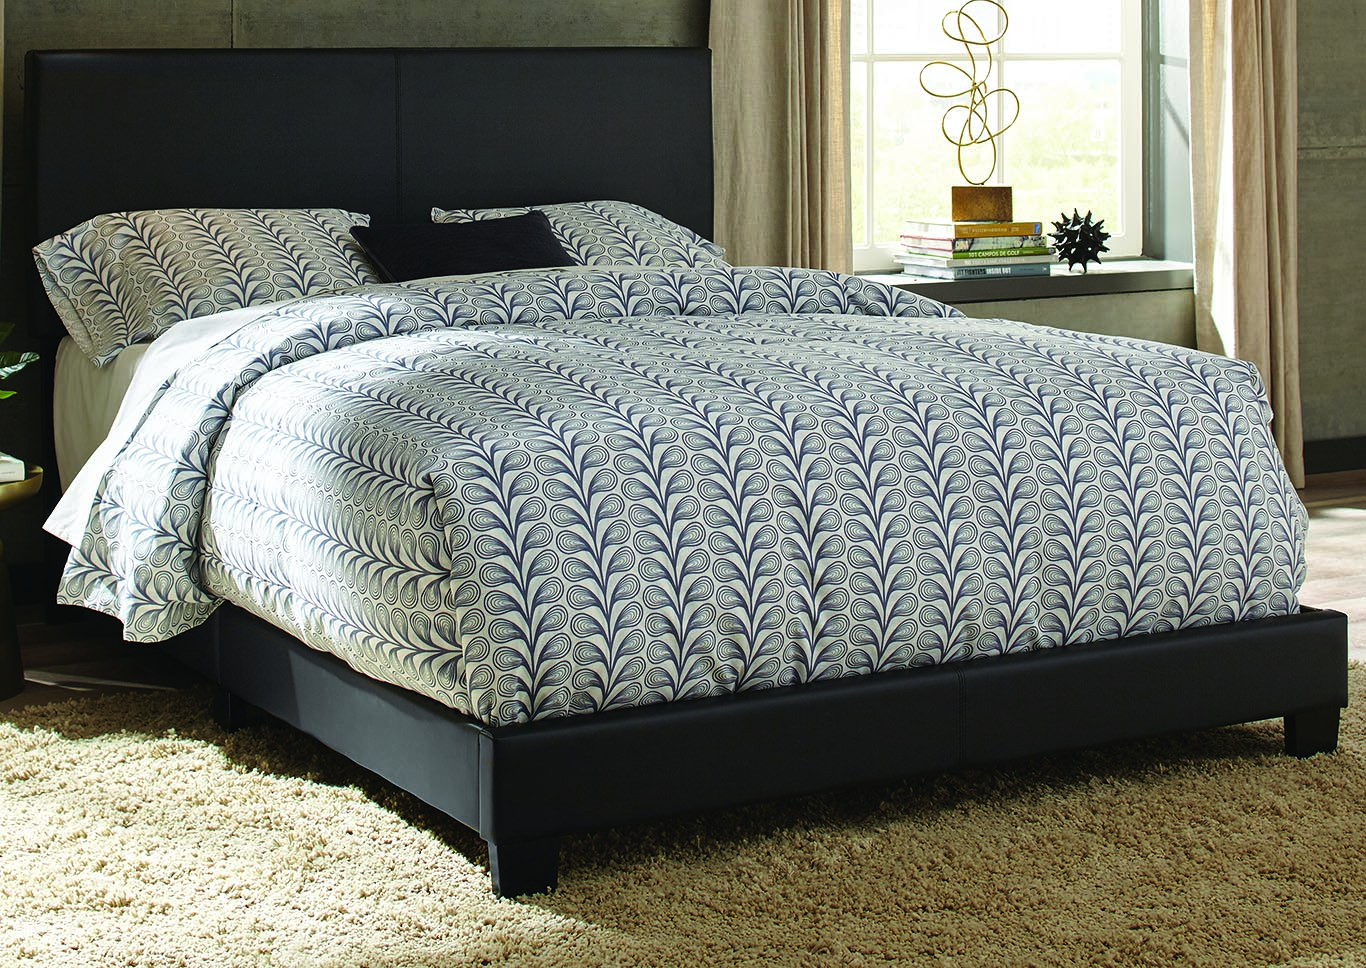 Ramon Queen Black PU Bed In One Box,Kith